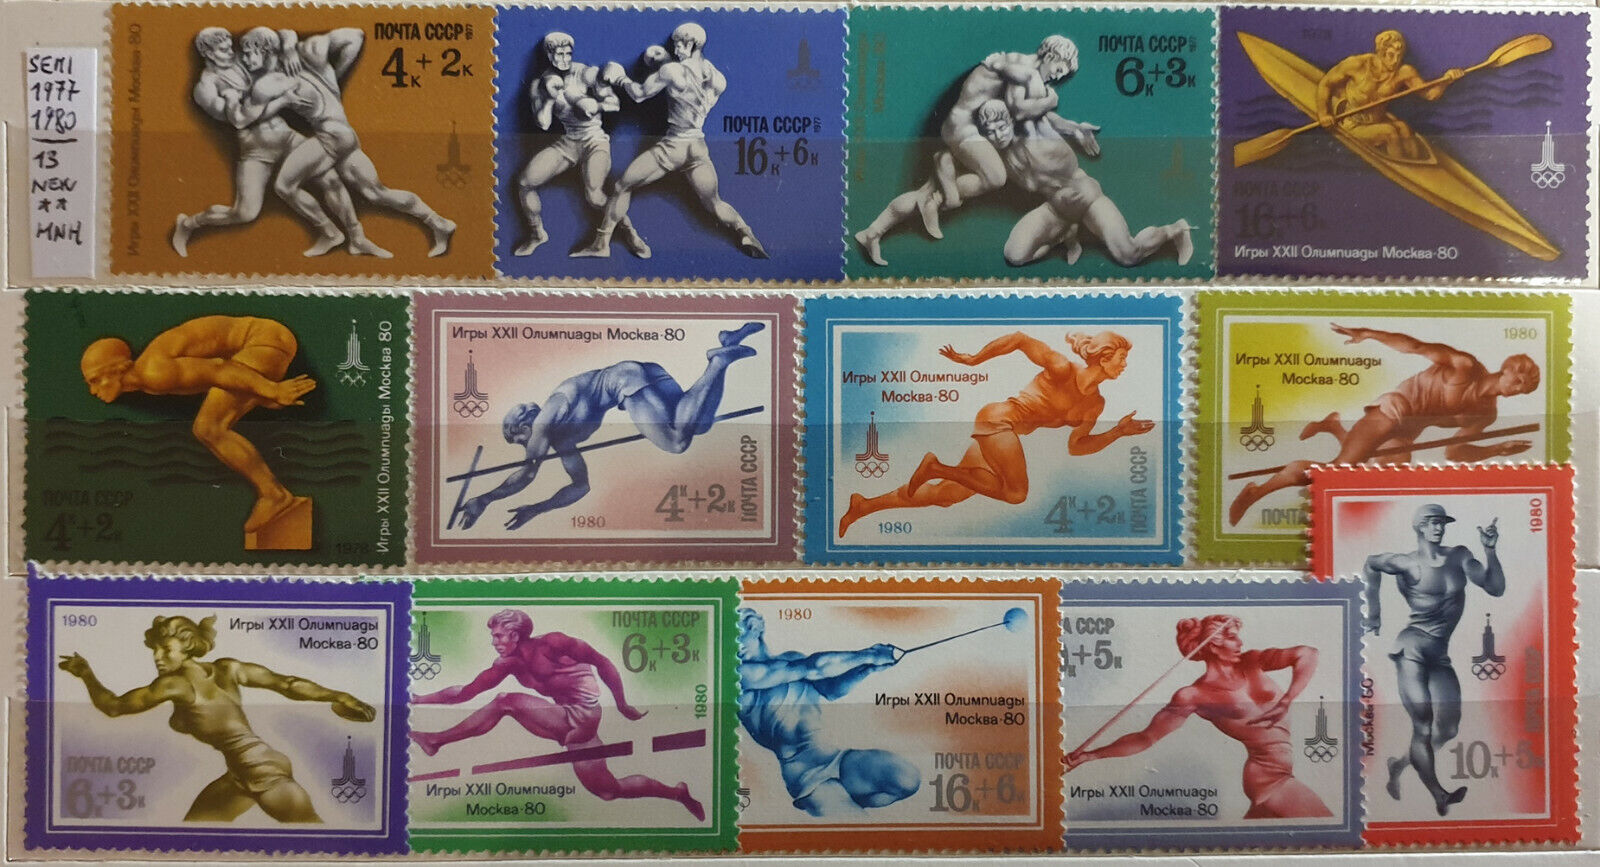 URSS CCCP RUSSIA 1977-1980 SEMIPOSTAL STAMPS – 13 STAMPS NEW**